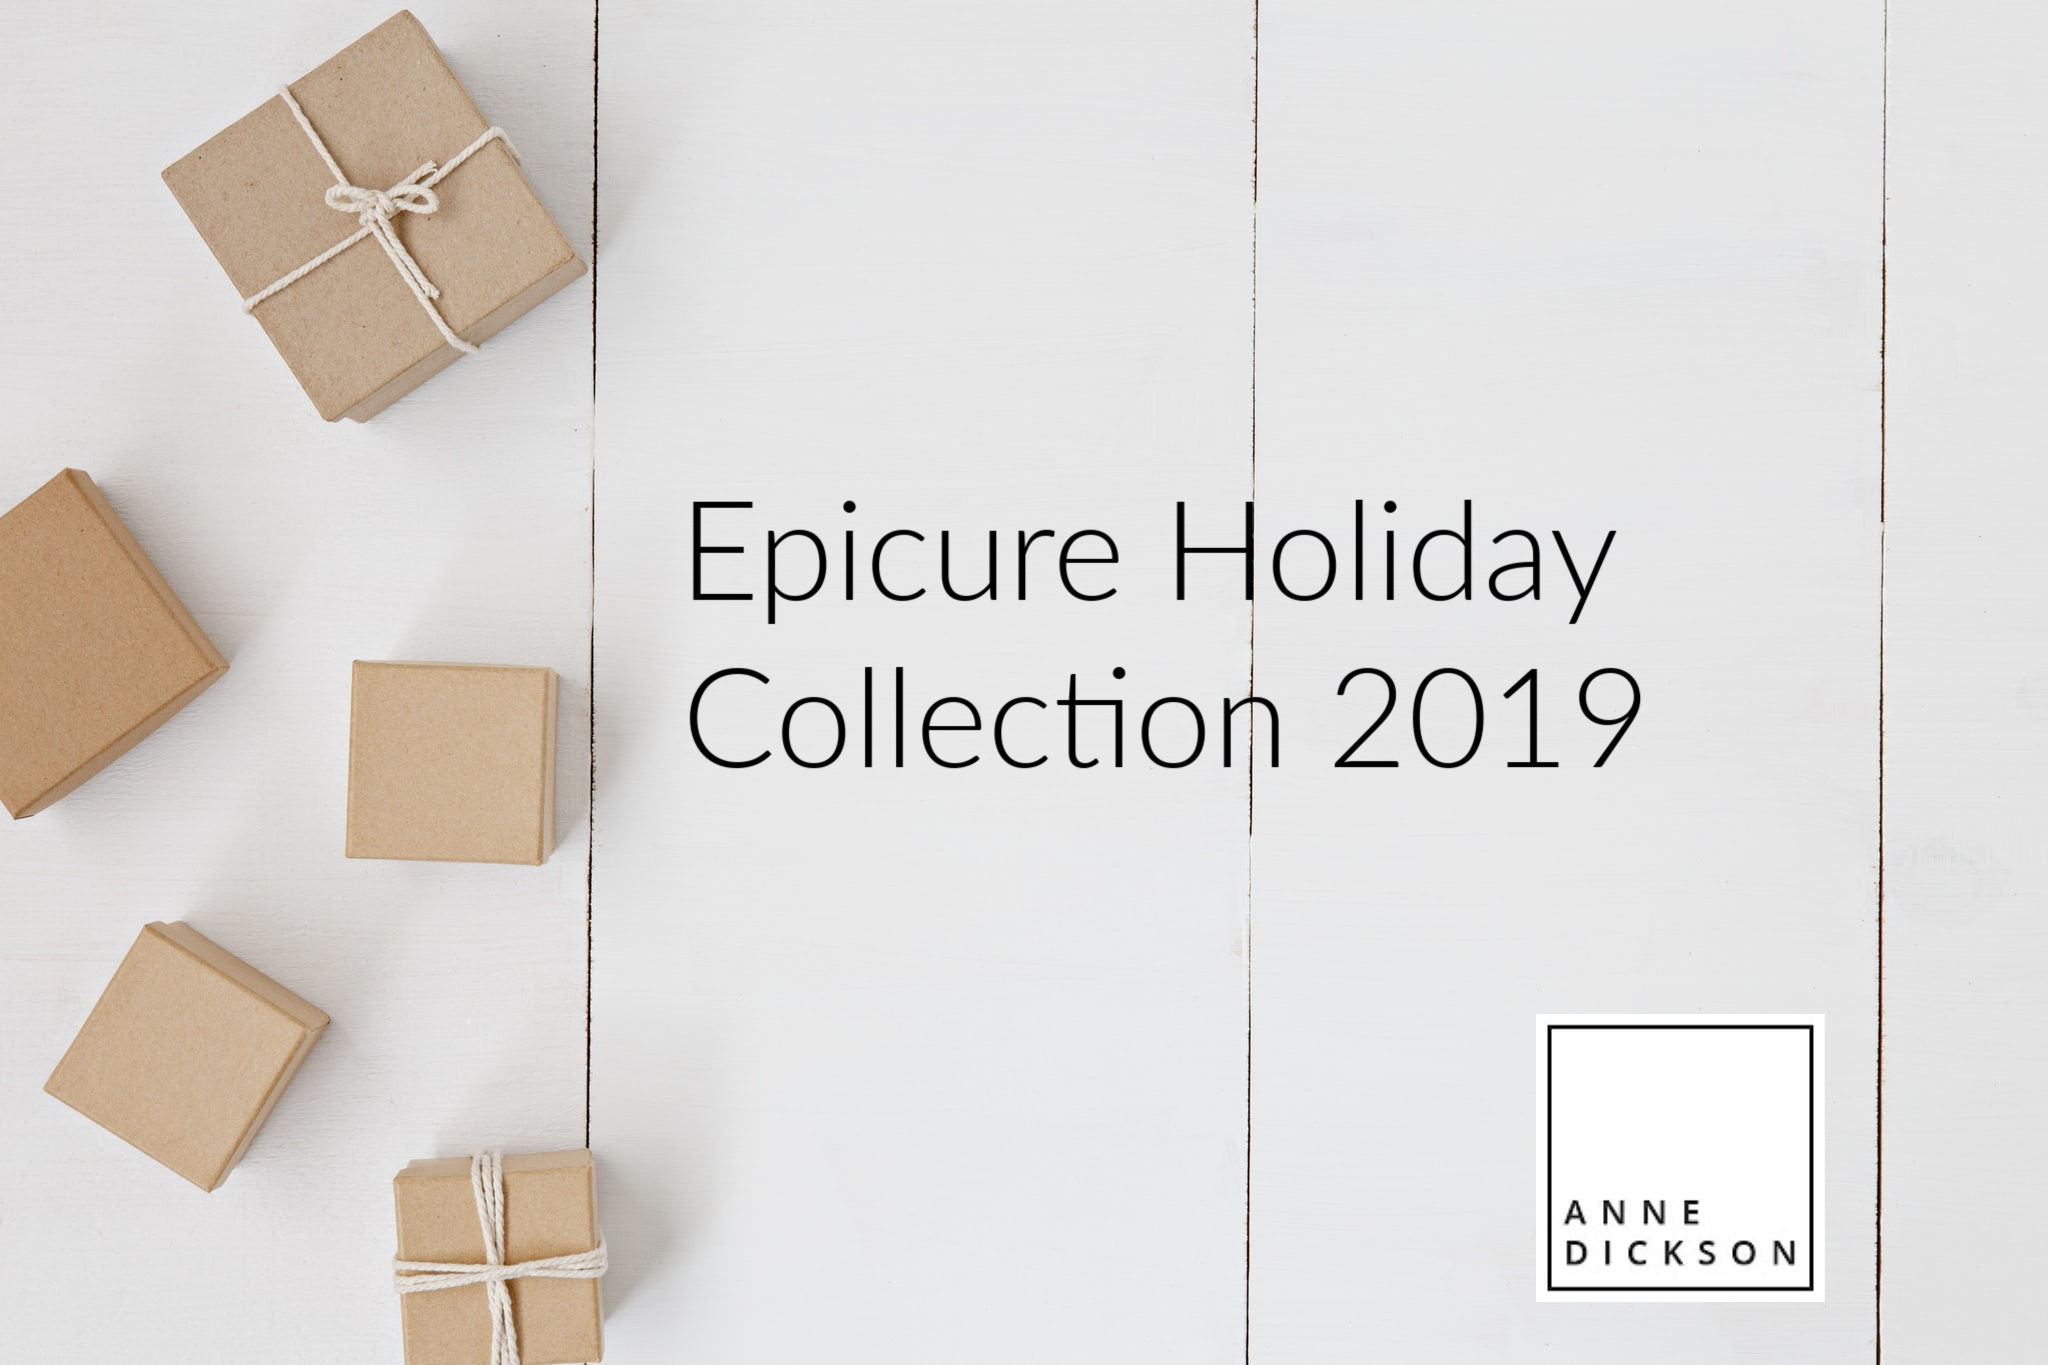 Epicure Holiday Collection 2020